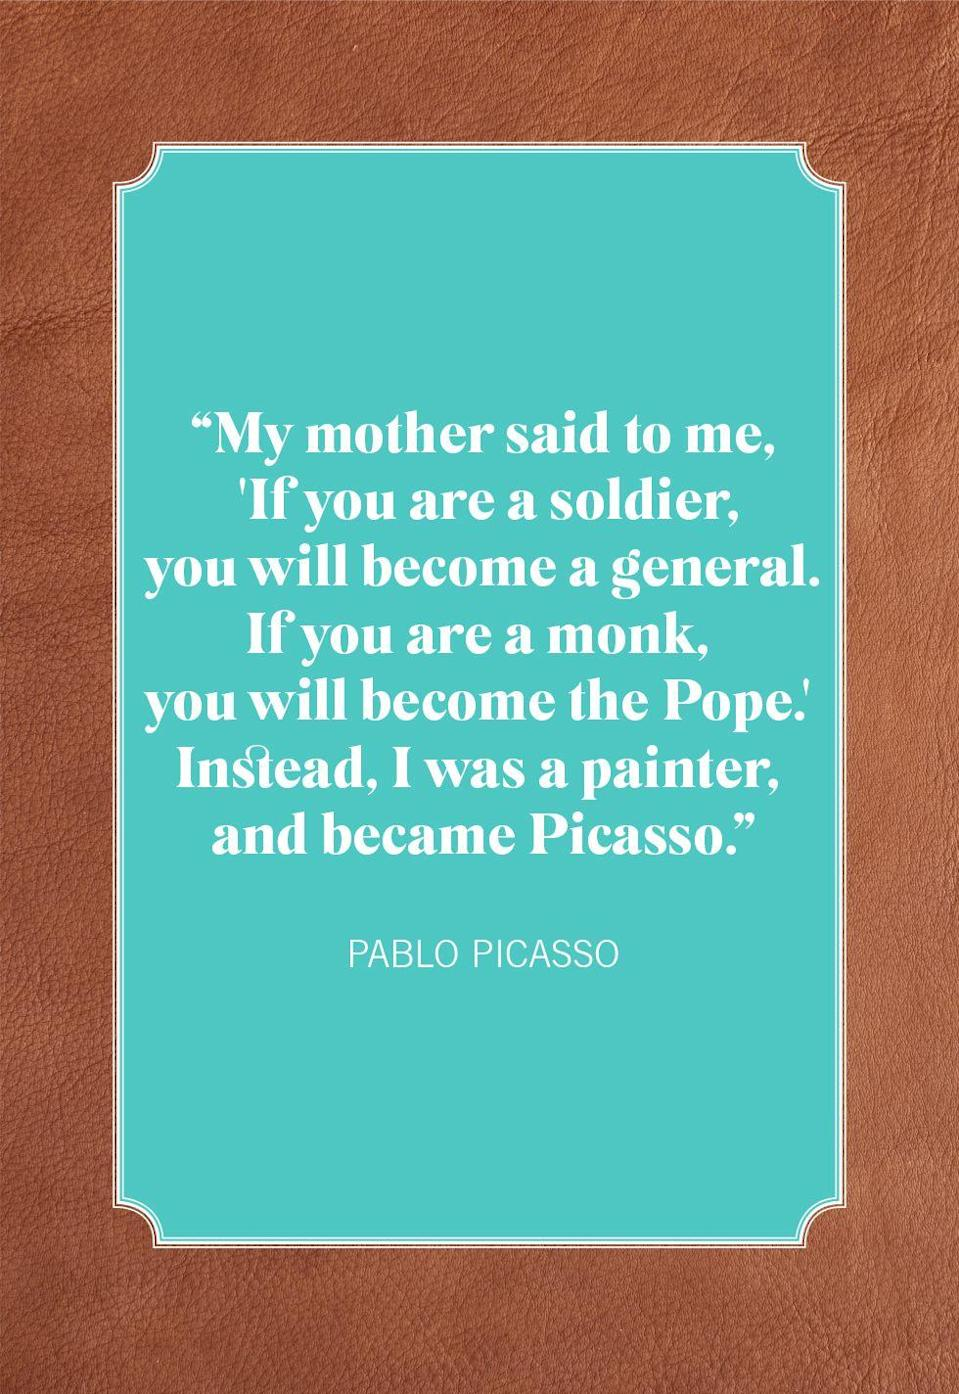 """<p>""""My mother said to me, 'If you are a soldier, you will become a general. If you are a monk, you will become the Pope.' Instead, I was a painter, and became Picasso.""""</p>"""